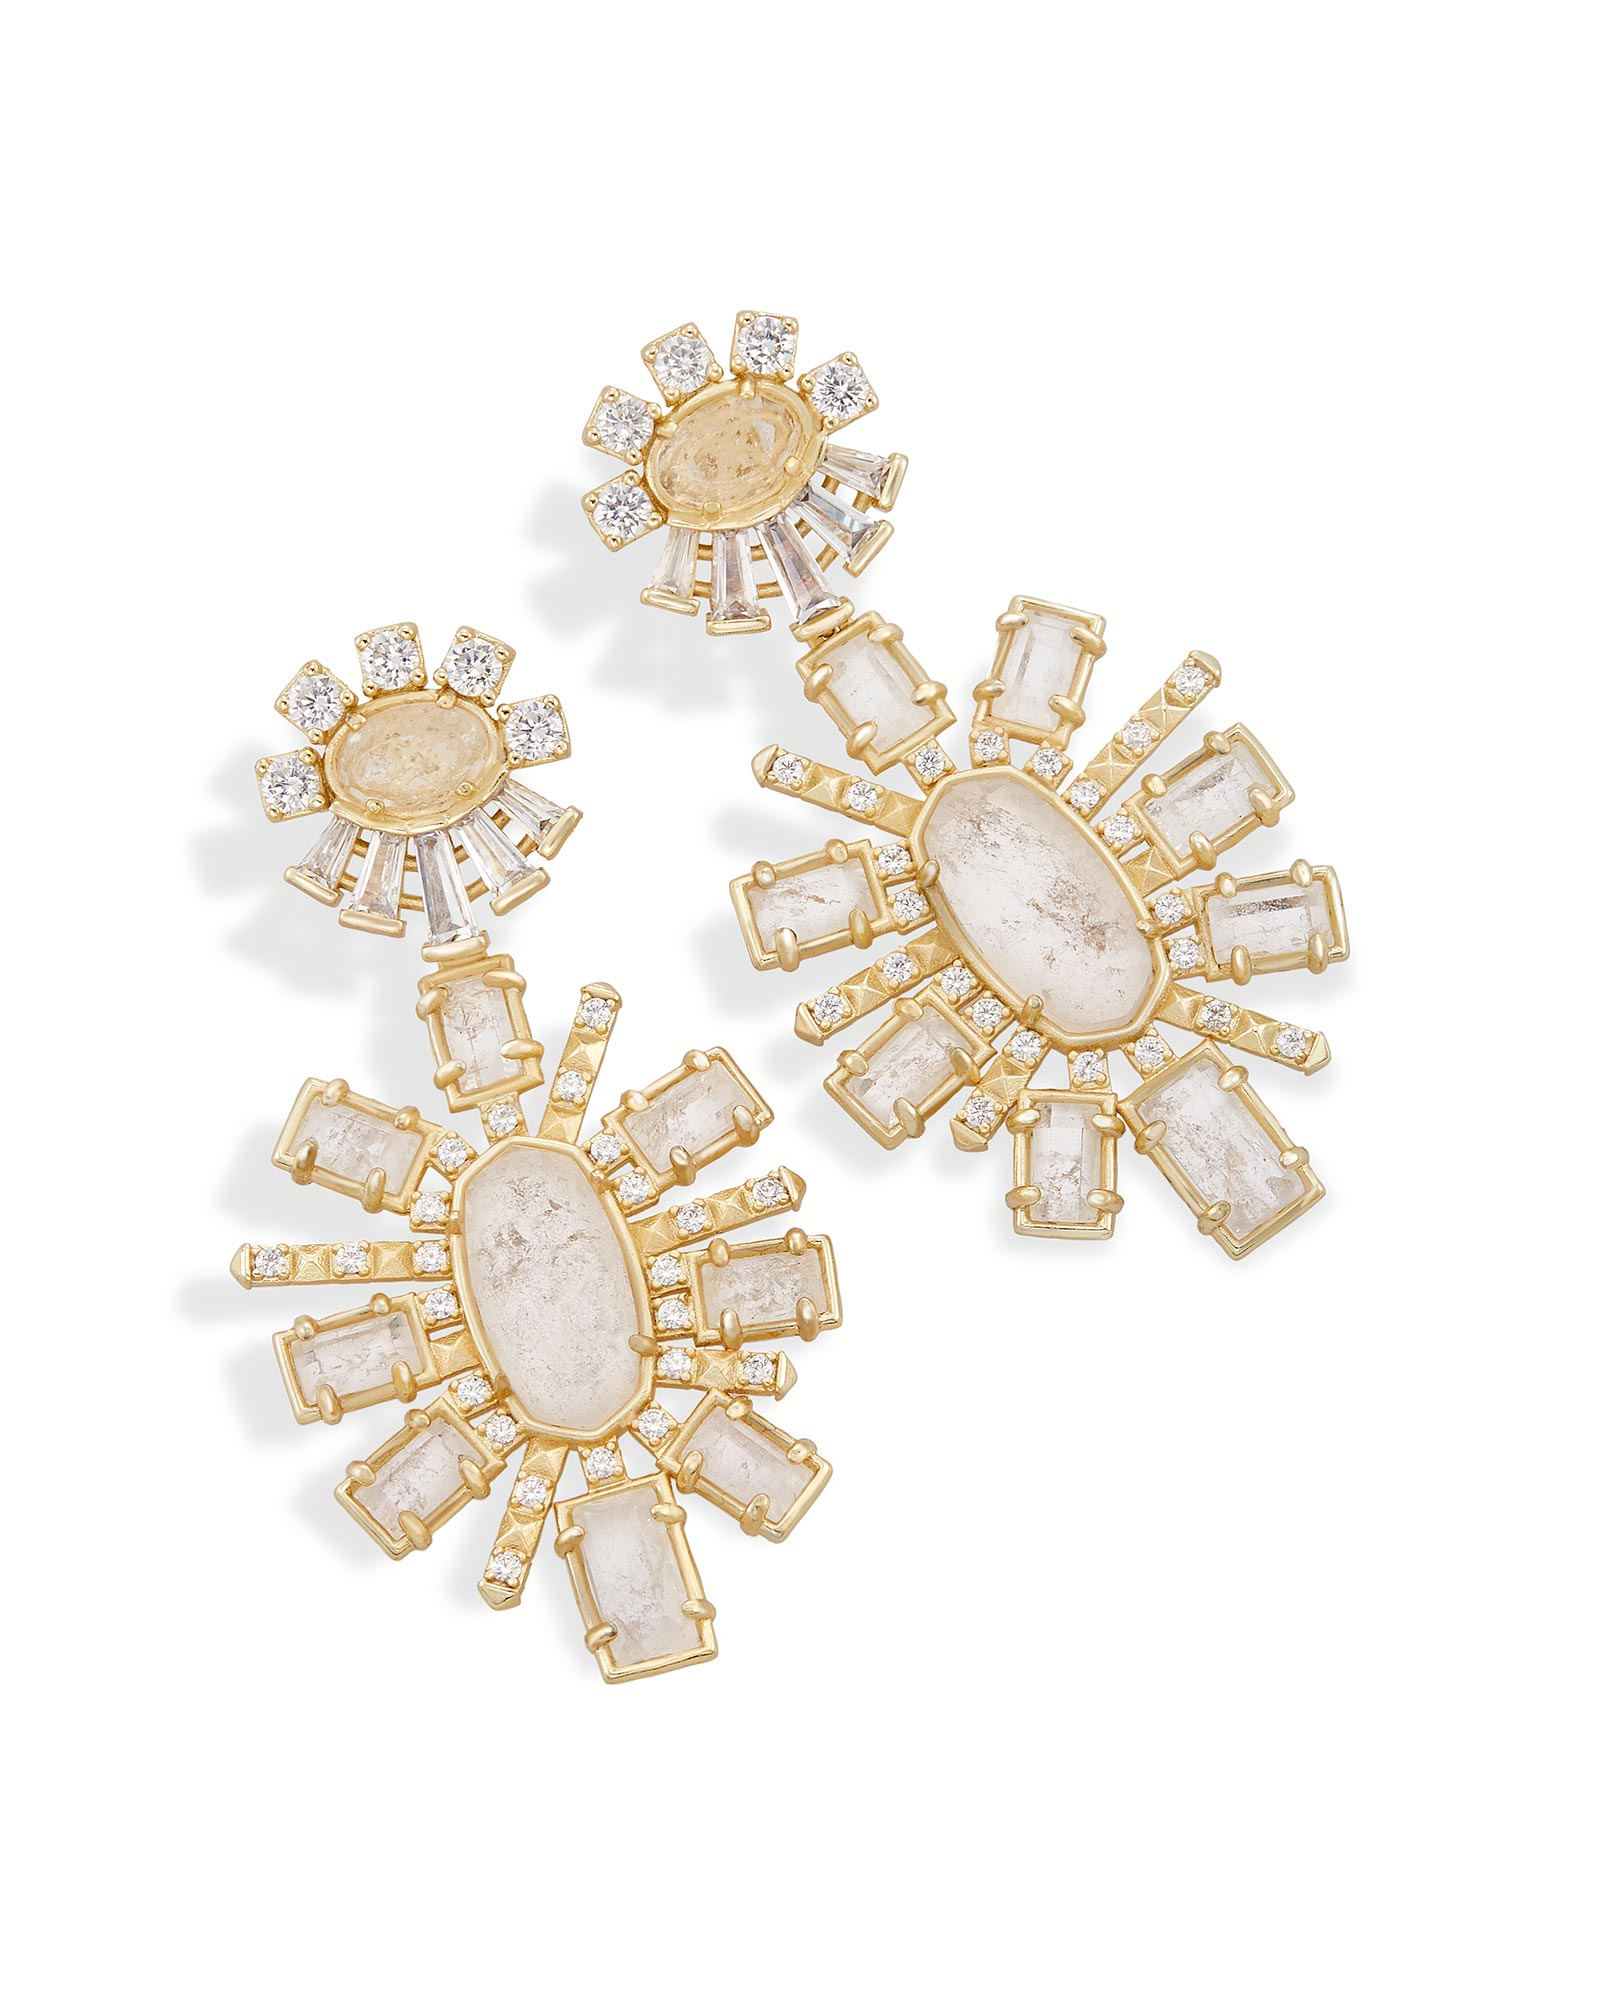 Studs | Climbers | Drop | Chandelier Earrings | Kendra Scott